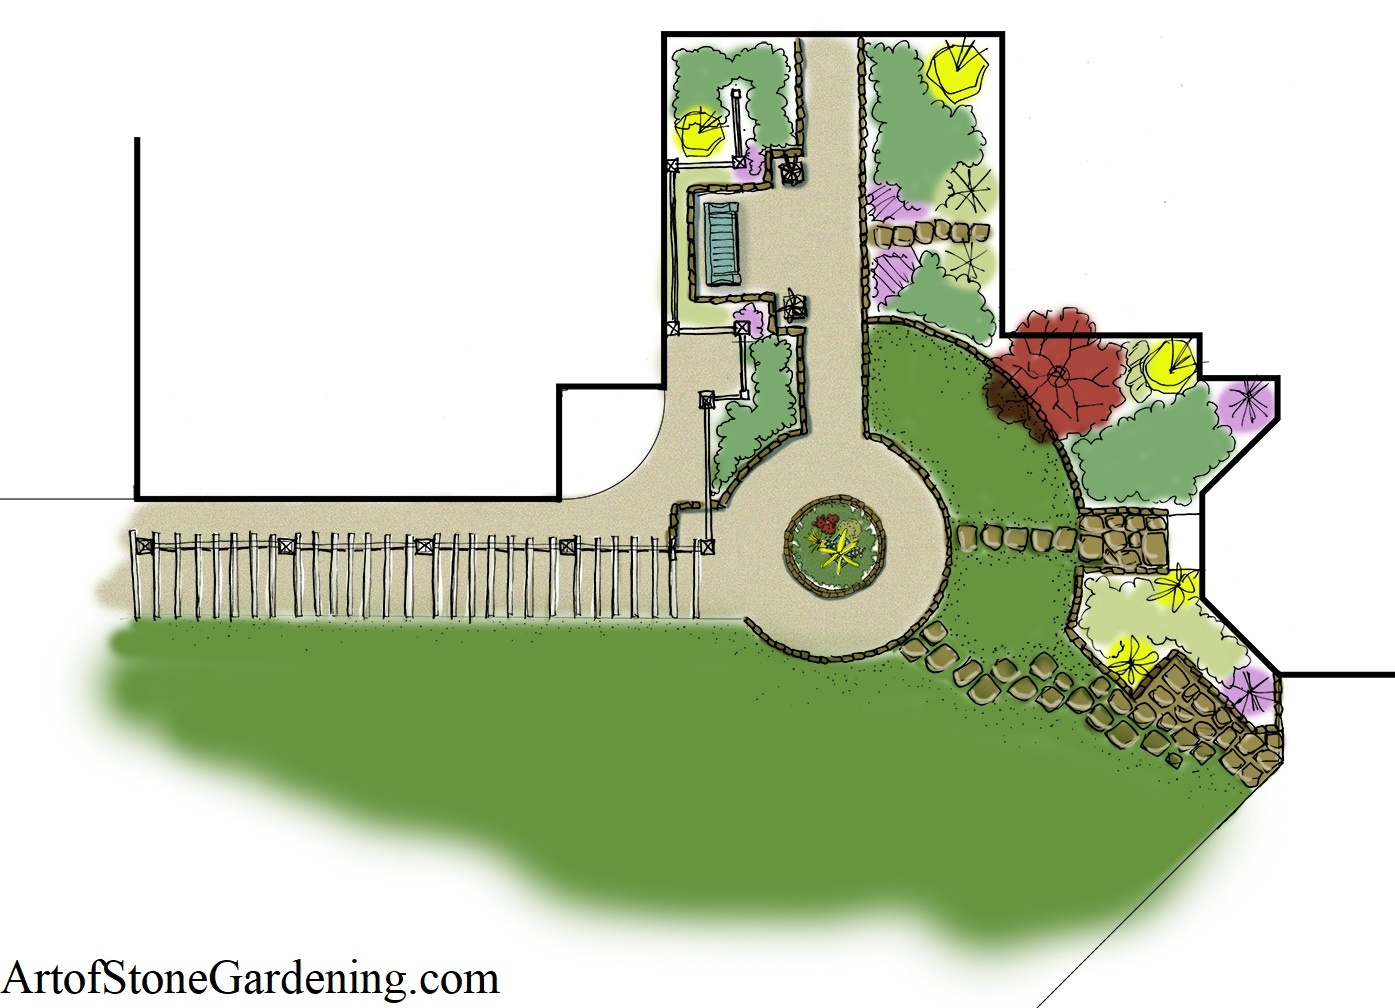 Architectural design colored plan drawing